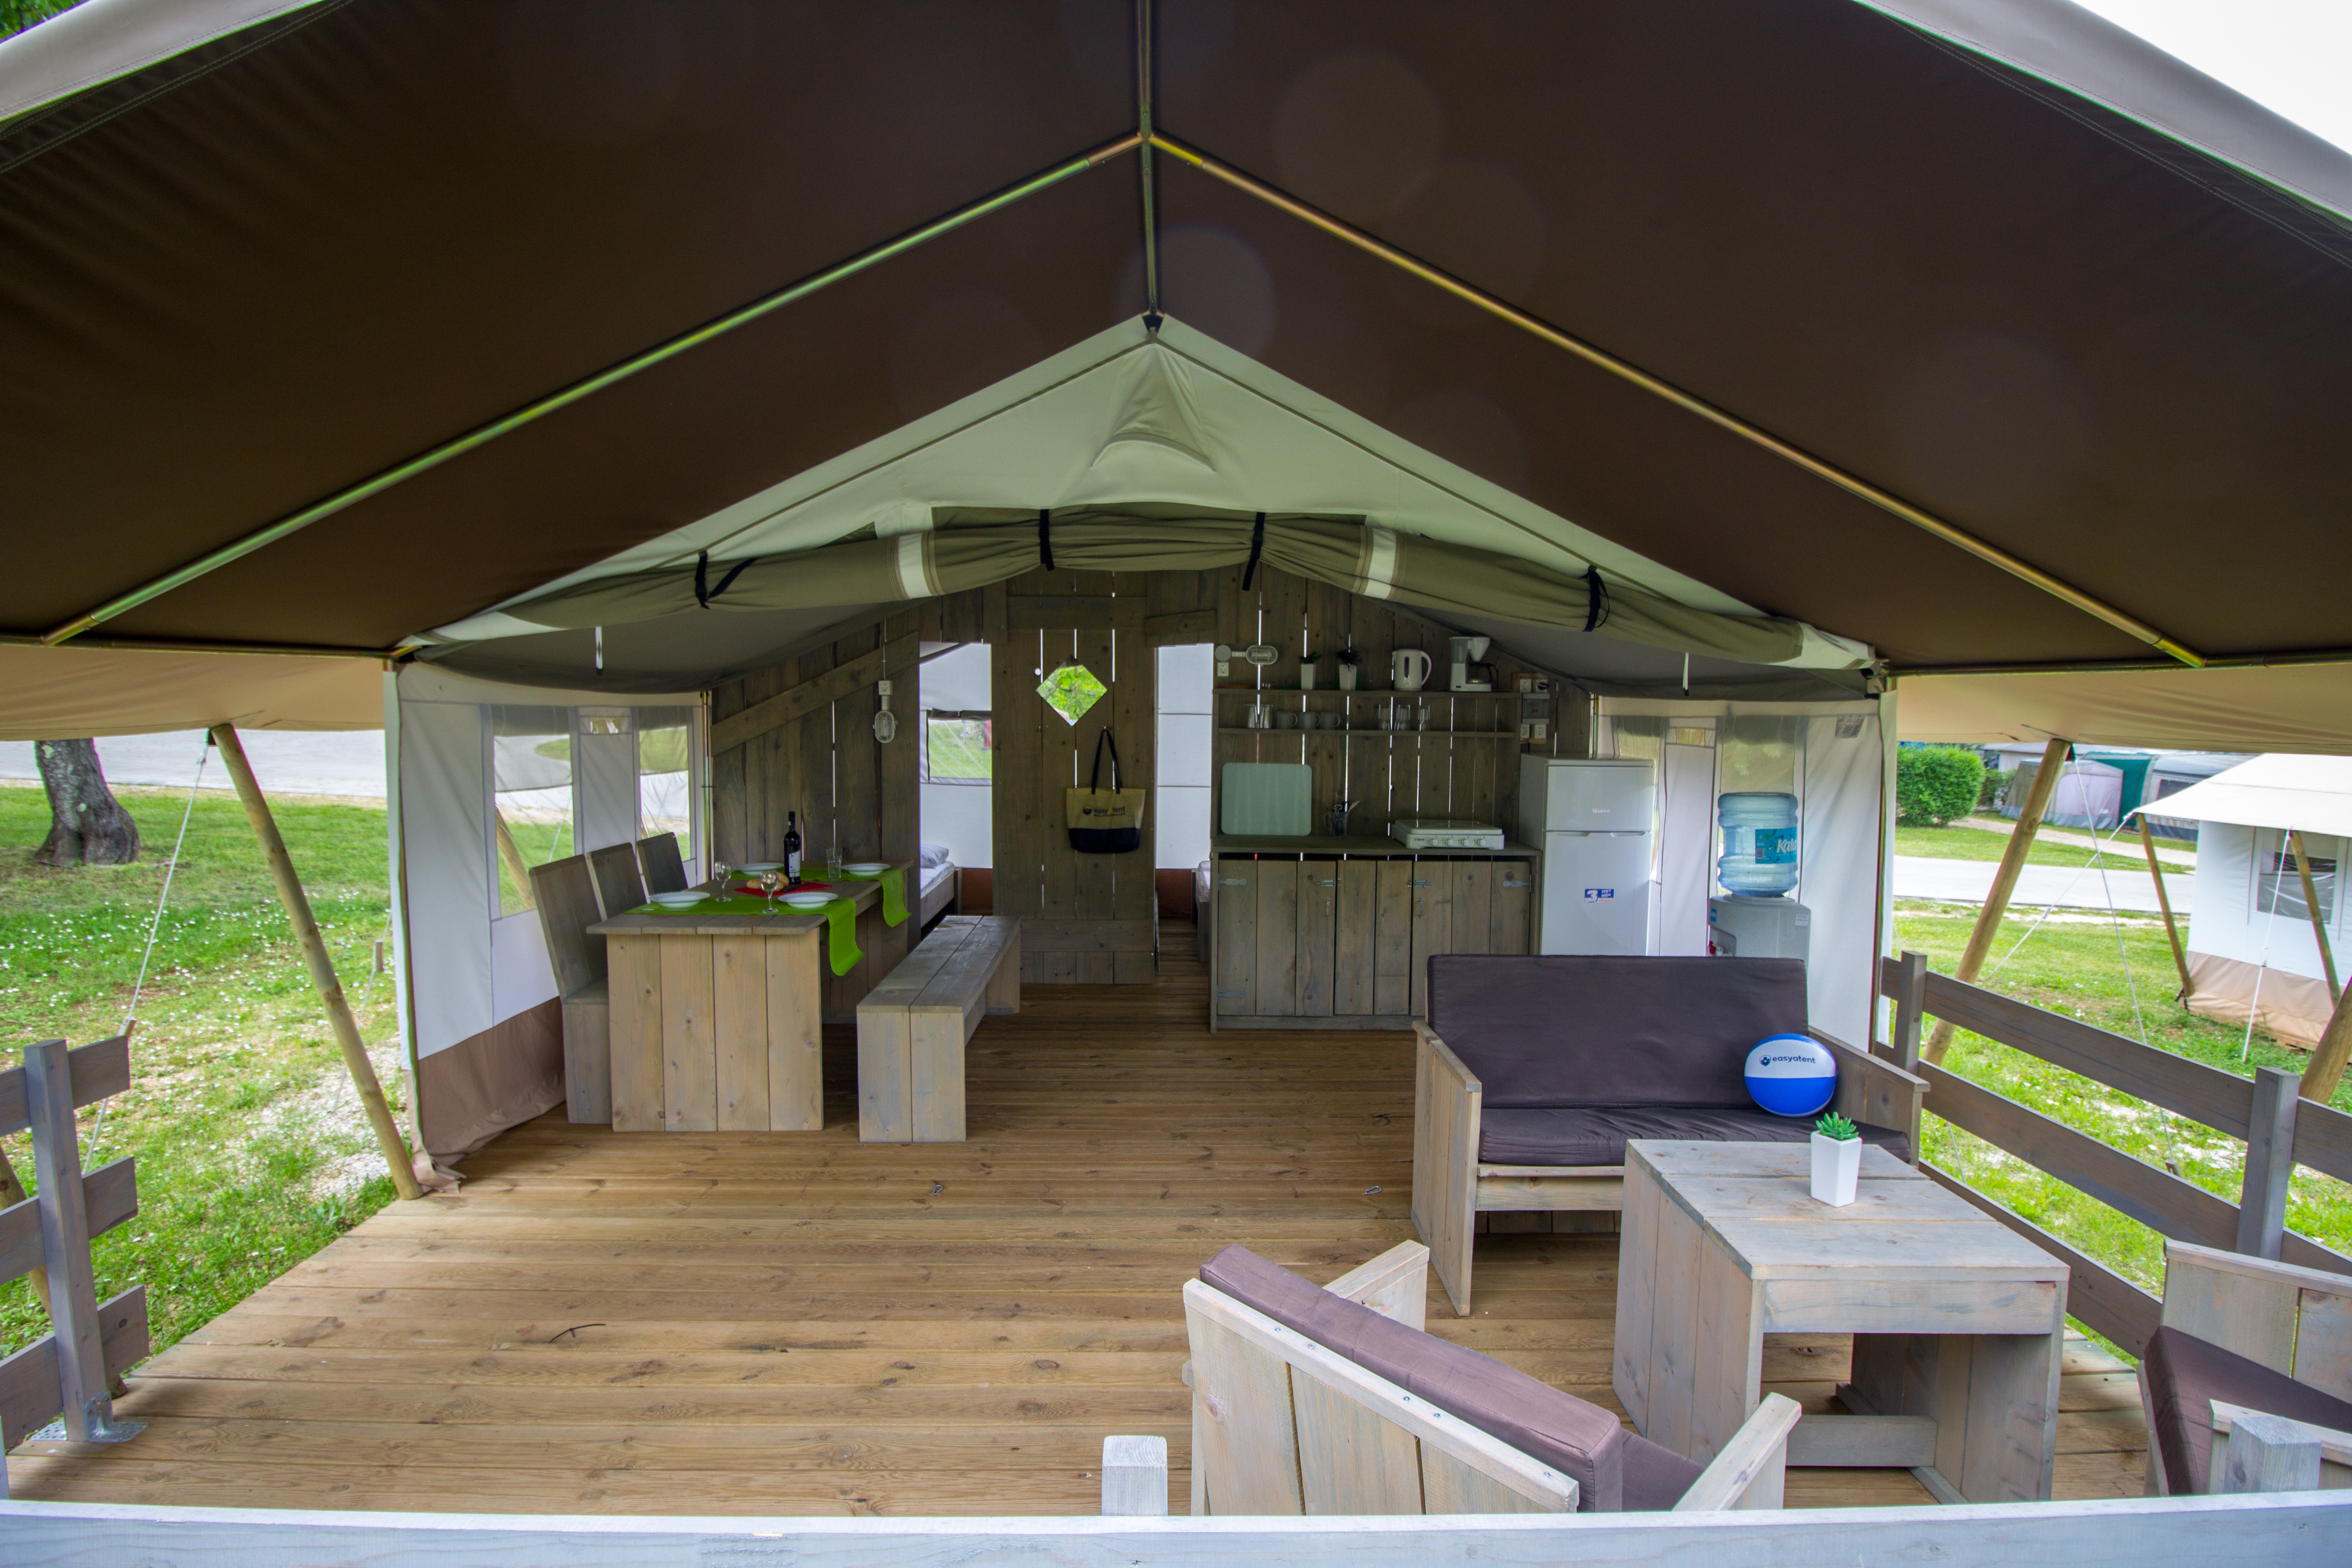 Bell Tent Hire Cotswolds Best 2017 & Glamping Tents For Sale - Best Tent 2018